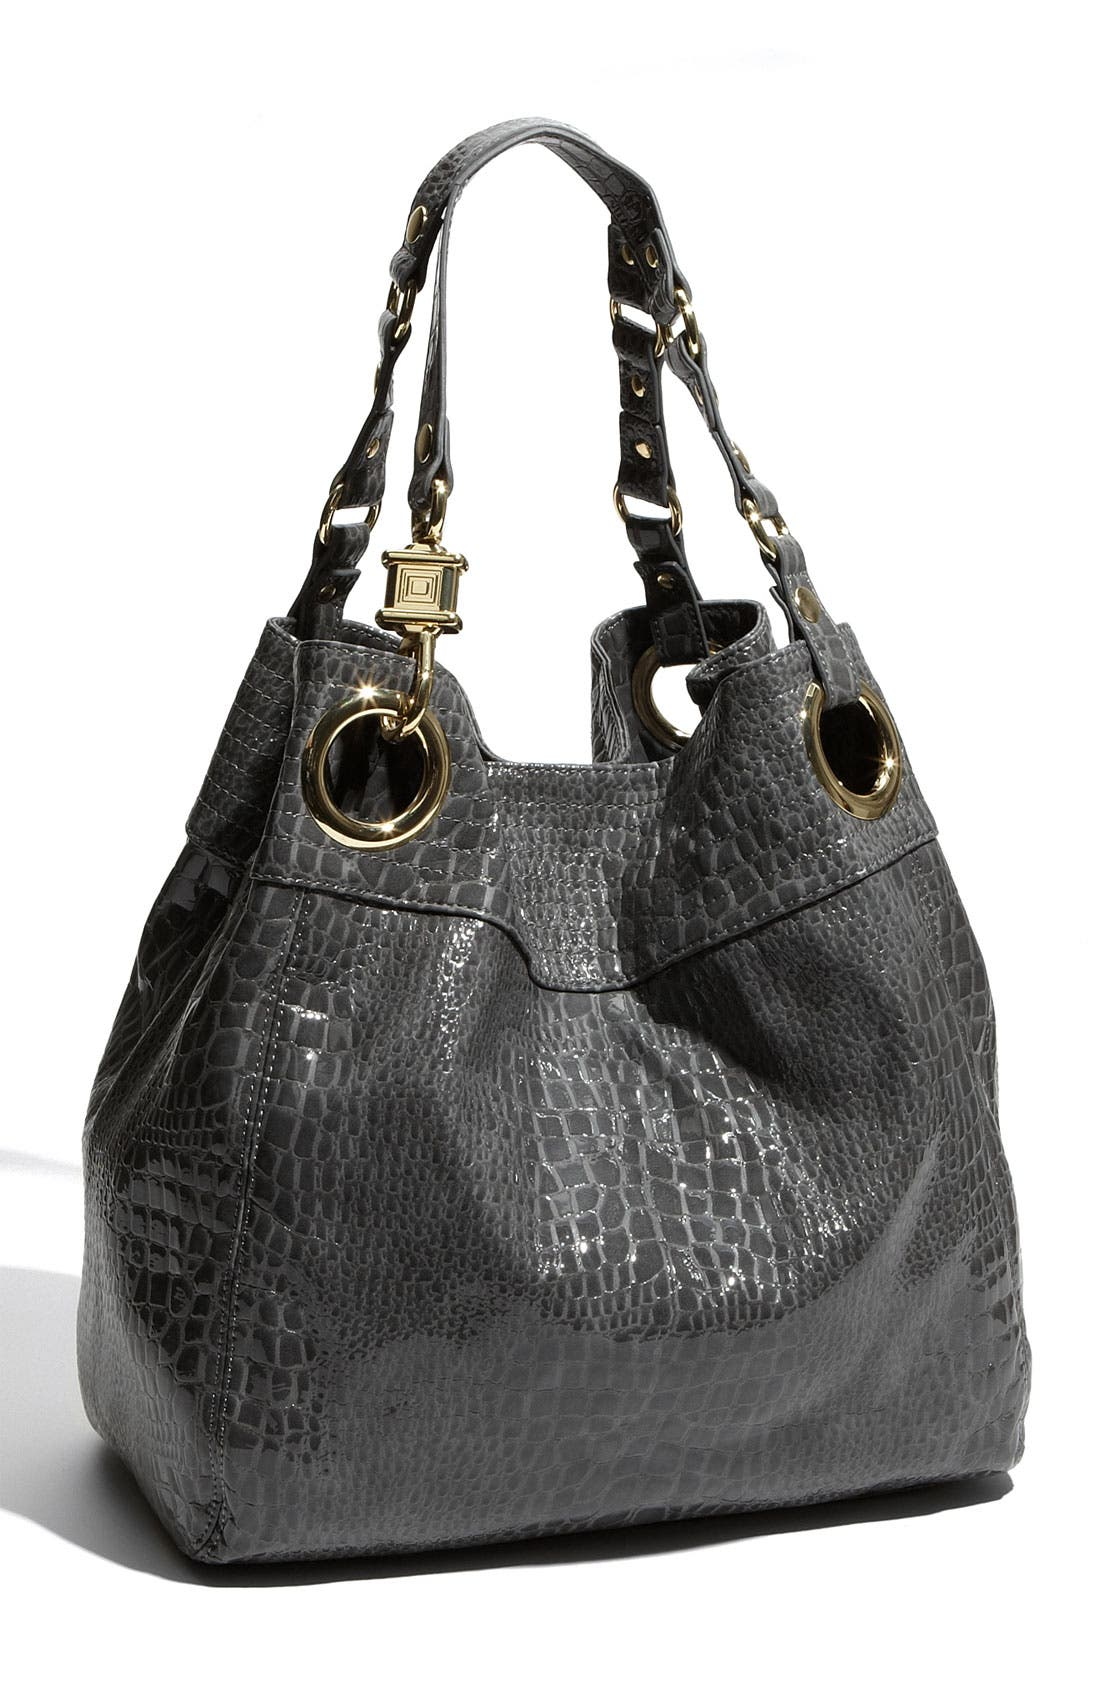 Alternate Image 1 Selected - Steven by Steve Madden 'Candy Coated' Croc Embossed Tote